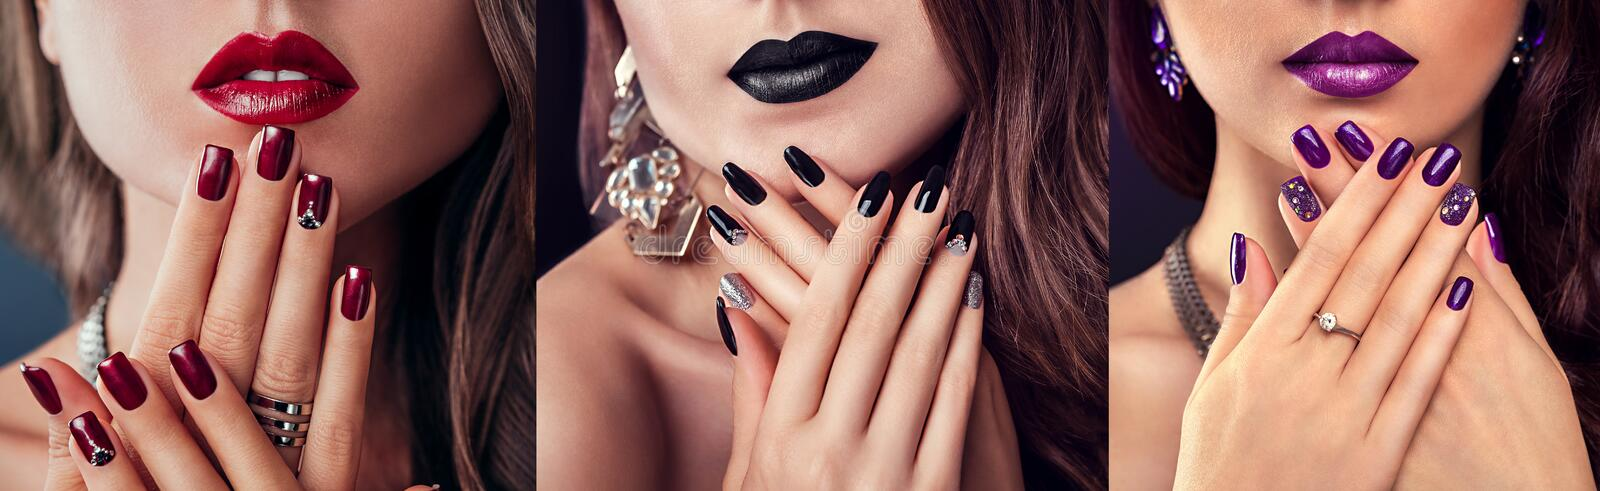 Beauty fashion model with different make-up and nail design wearing jewelry. Set of manicure. Three stylish looks royalty free stock photography